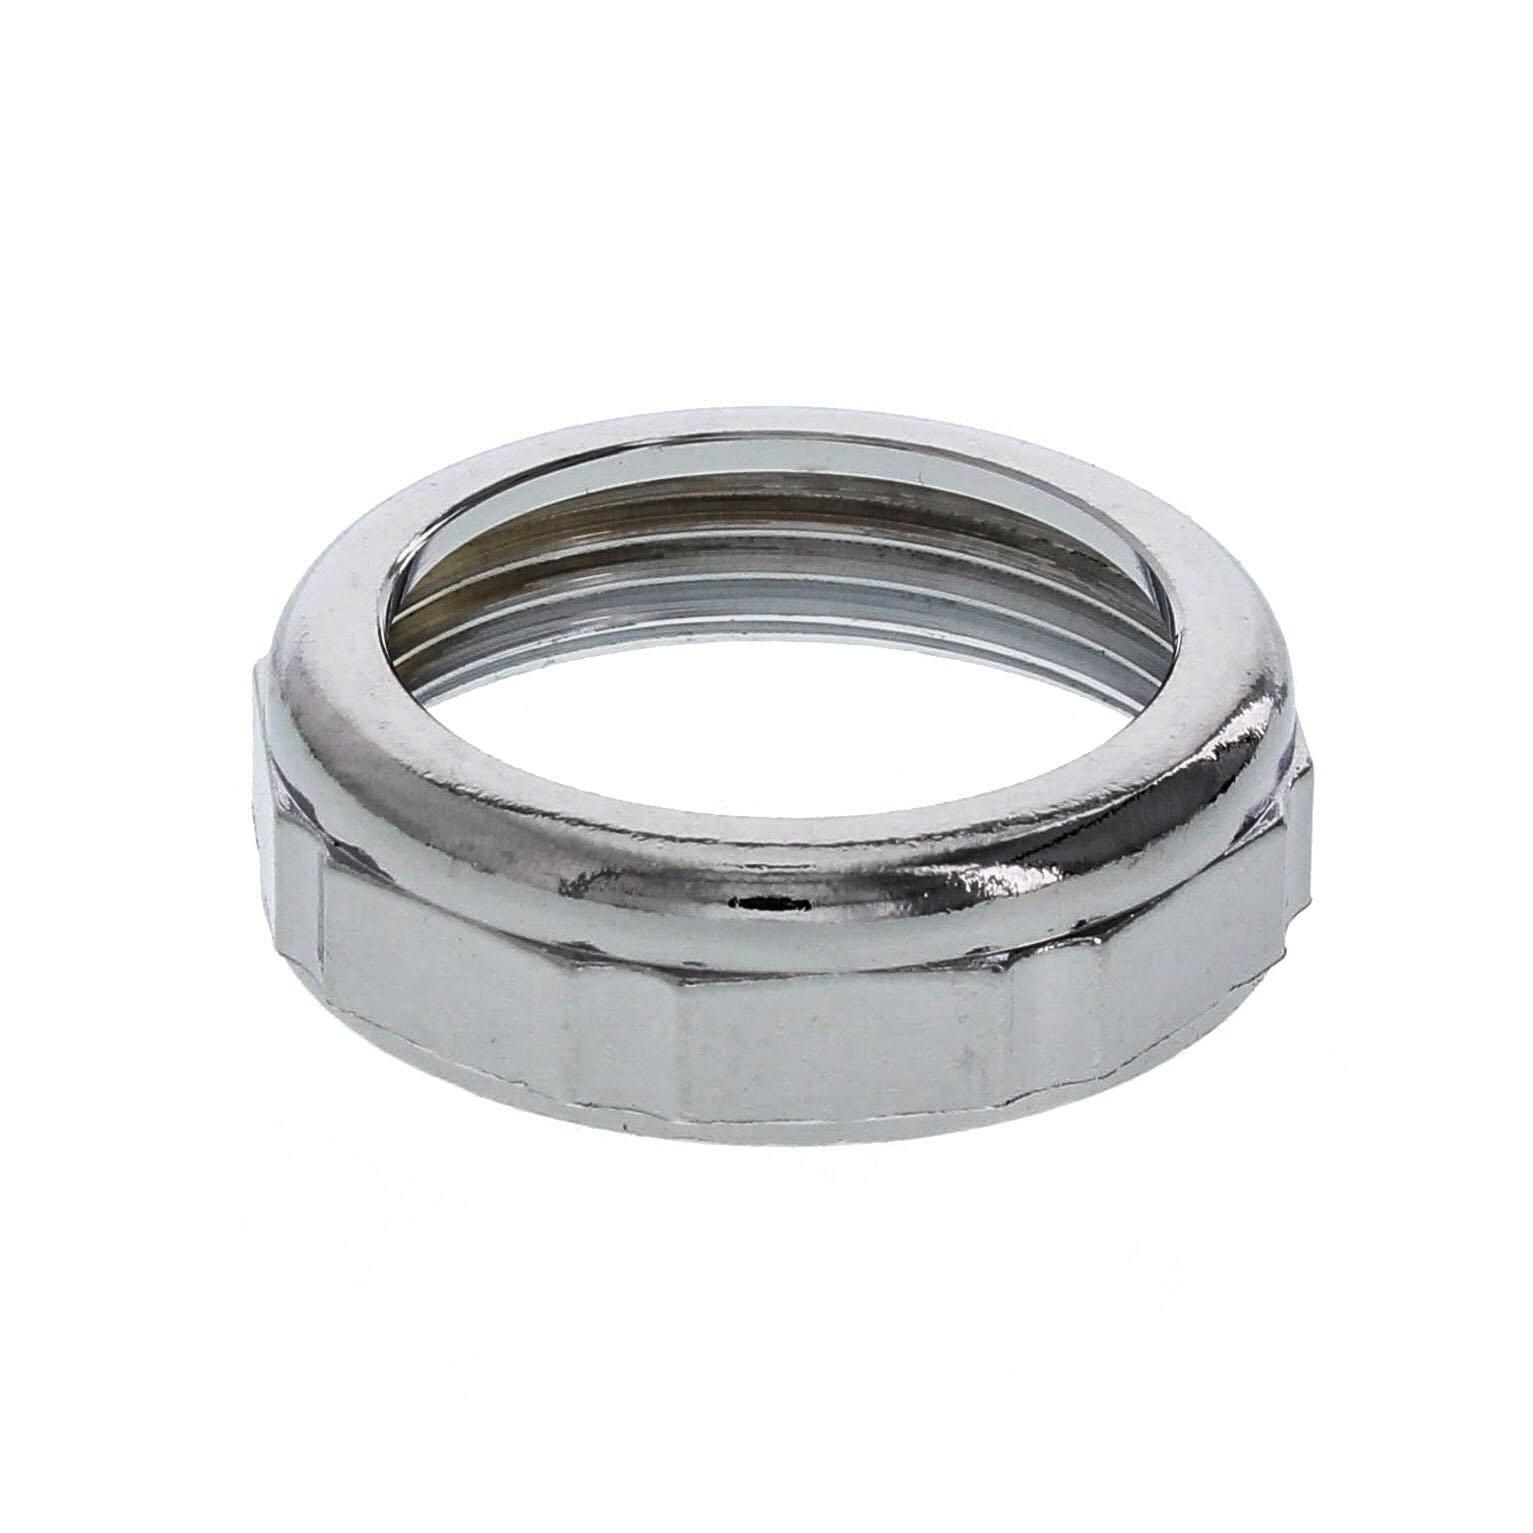 T&S BRASS OVERFLOW COUPLING NUT (WASTE D